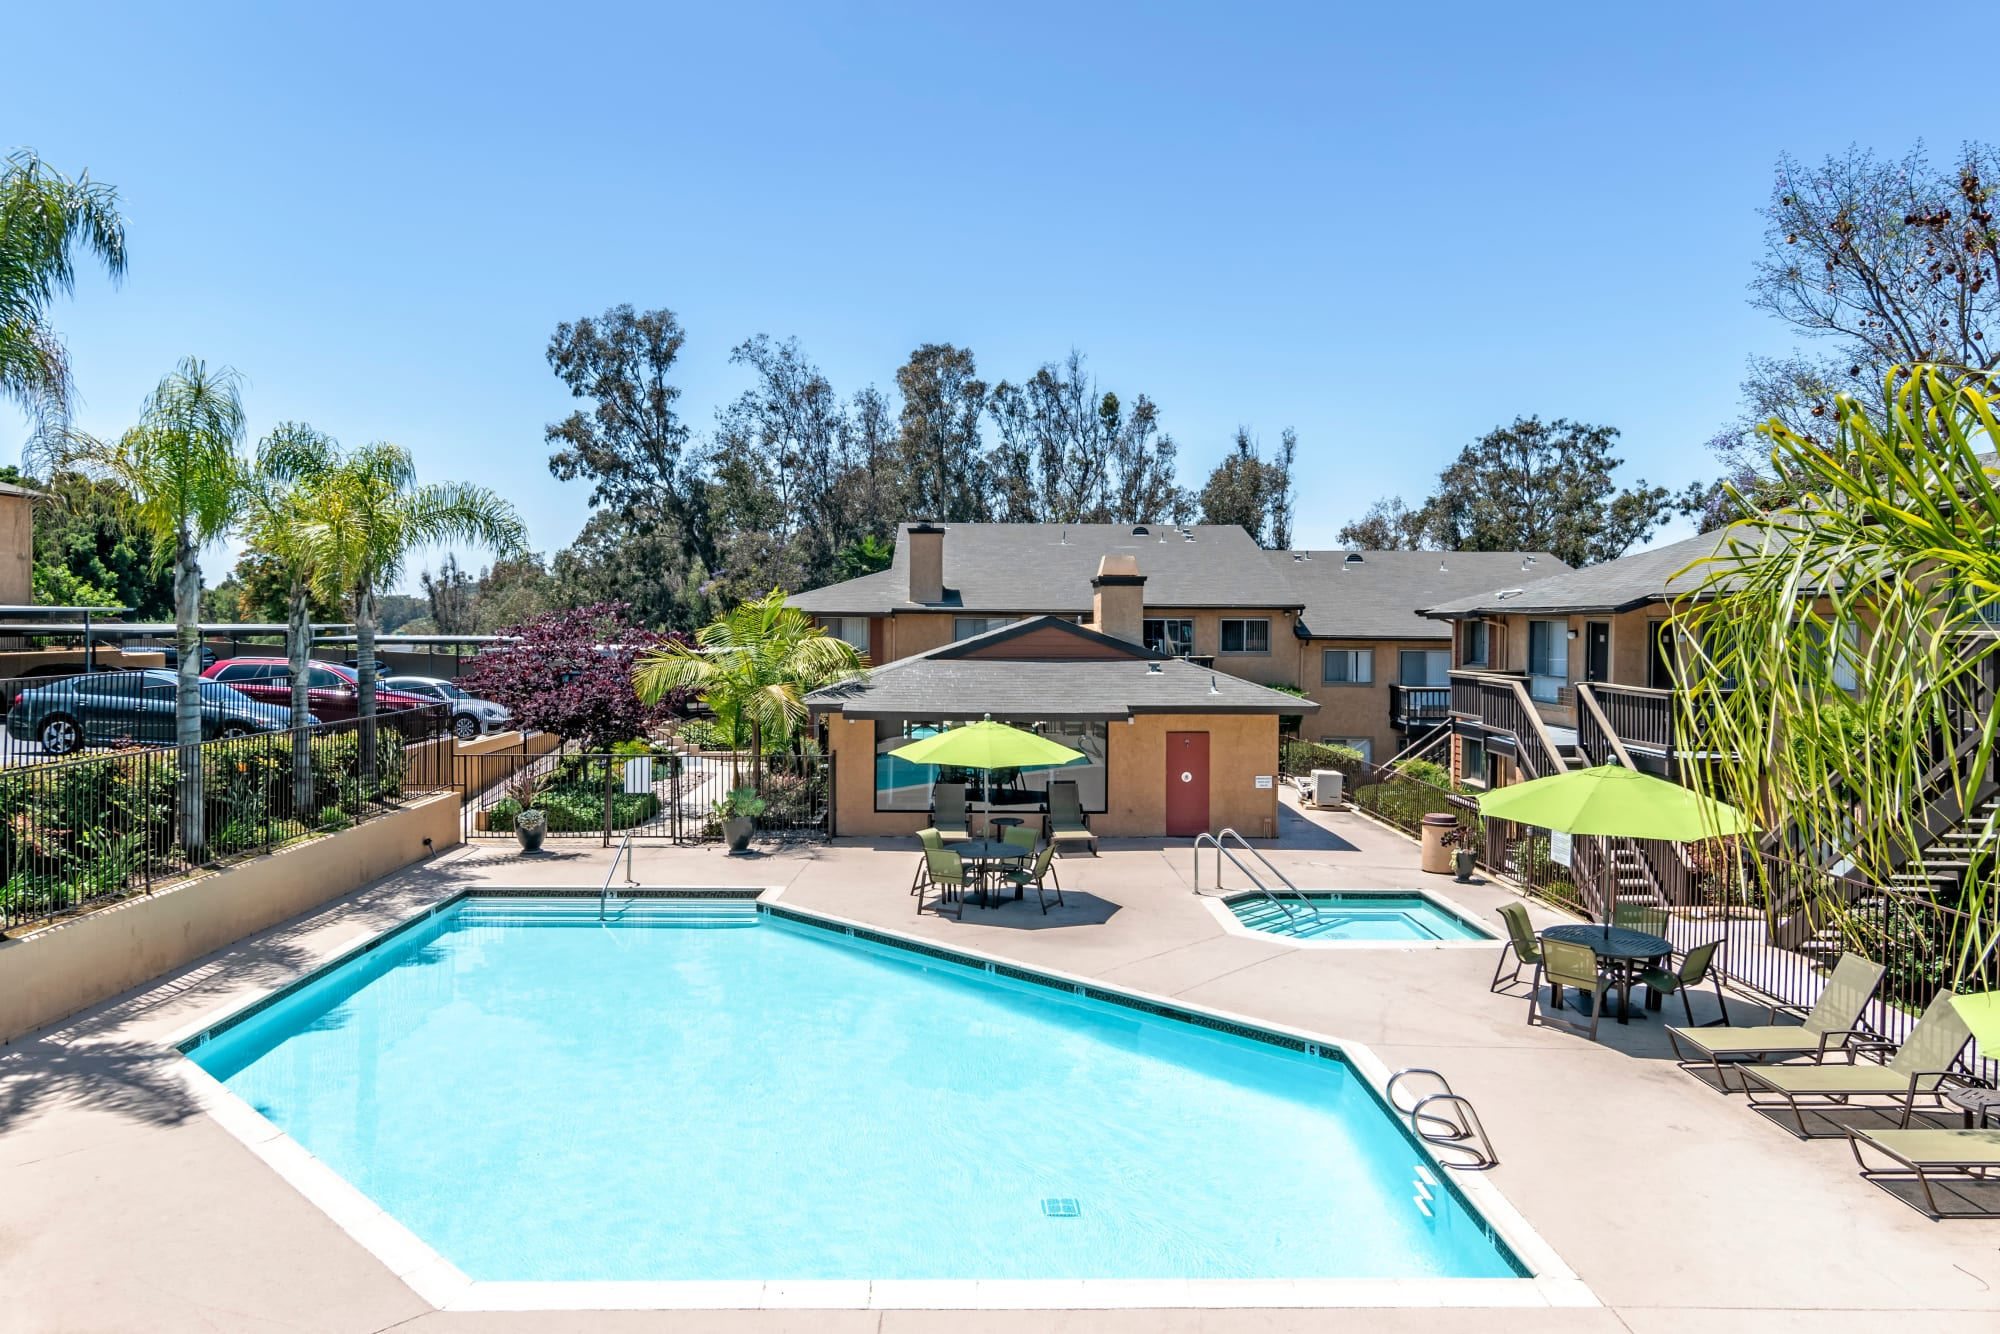 The pool and deck area at Hillside Terrace Apartments in Lemon Grove, California